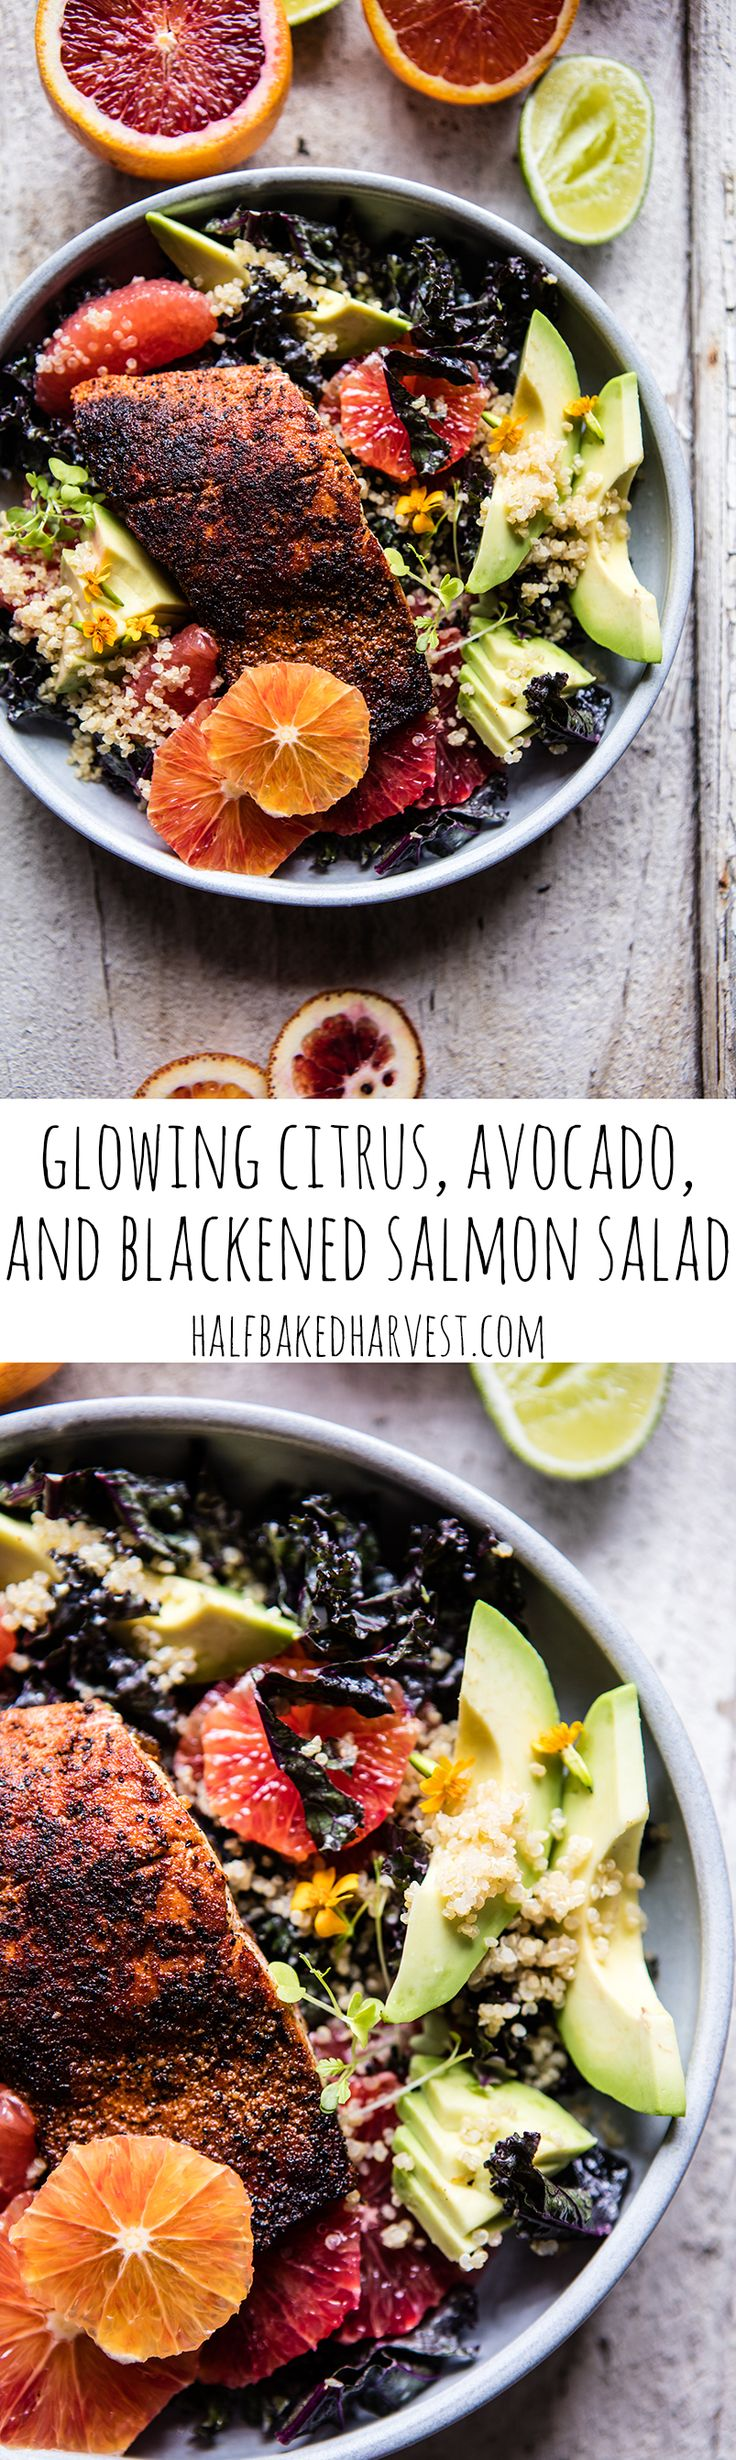 Glowing Citrus, Avocado, and Blackened Salmon Salad | halfbakedharvest.com @hbharvest